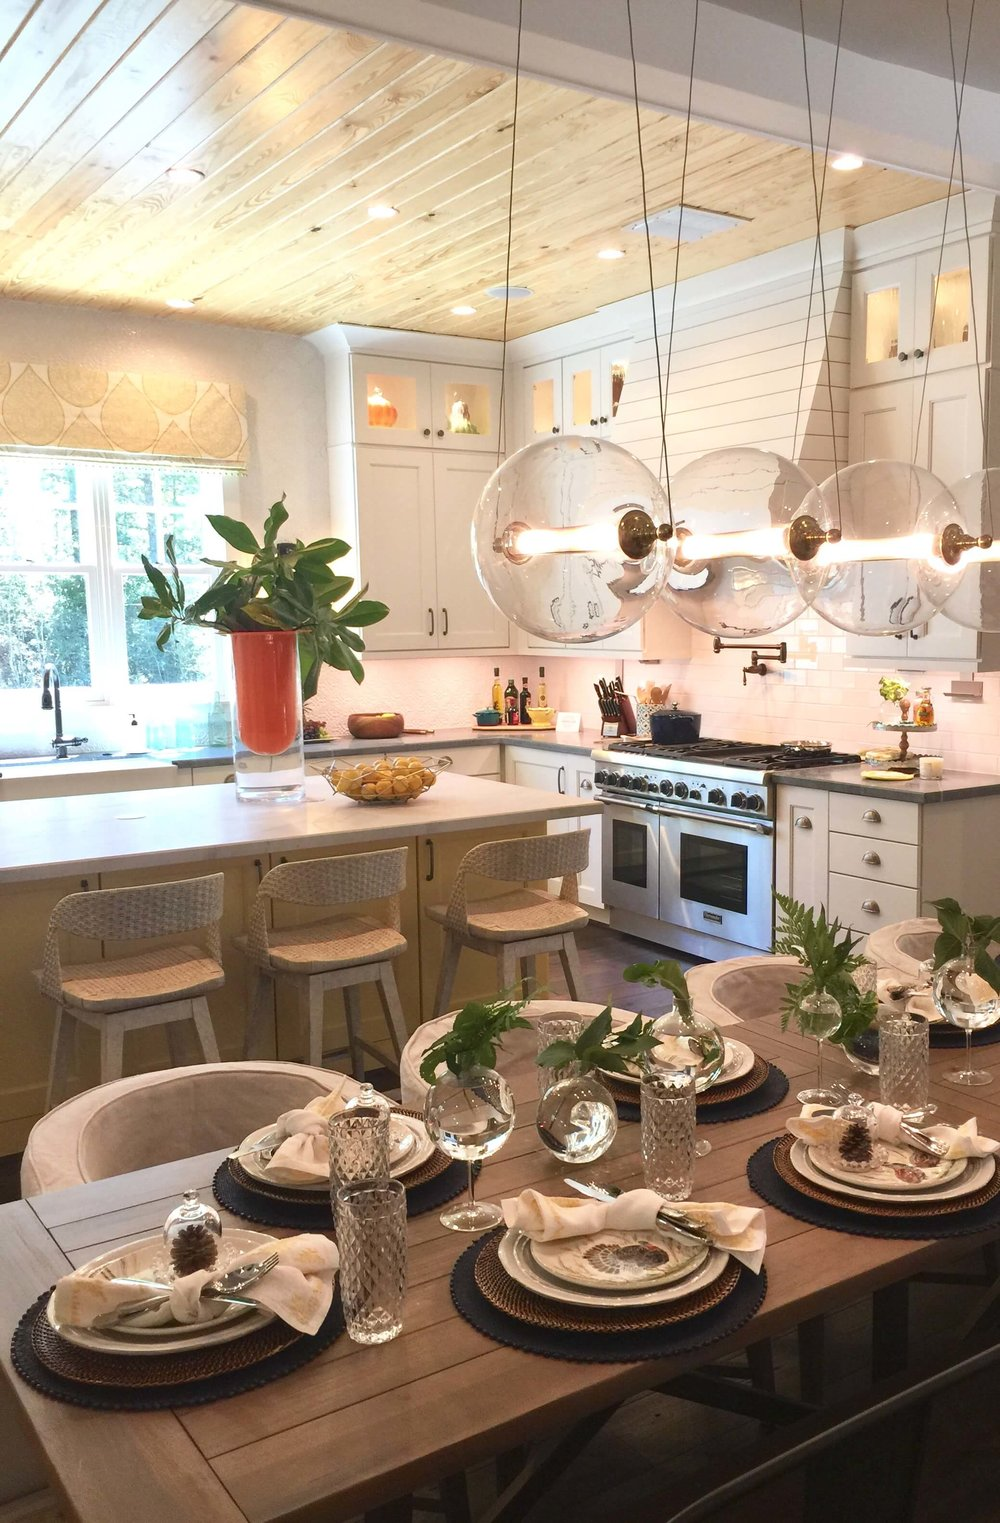 Southern Living Showcase Home - Kitchen with shiplap hood and ceiling and yellow island #kitchenisland #kitchendesignideas